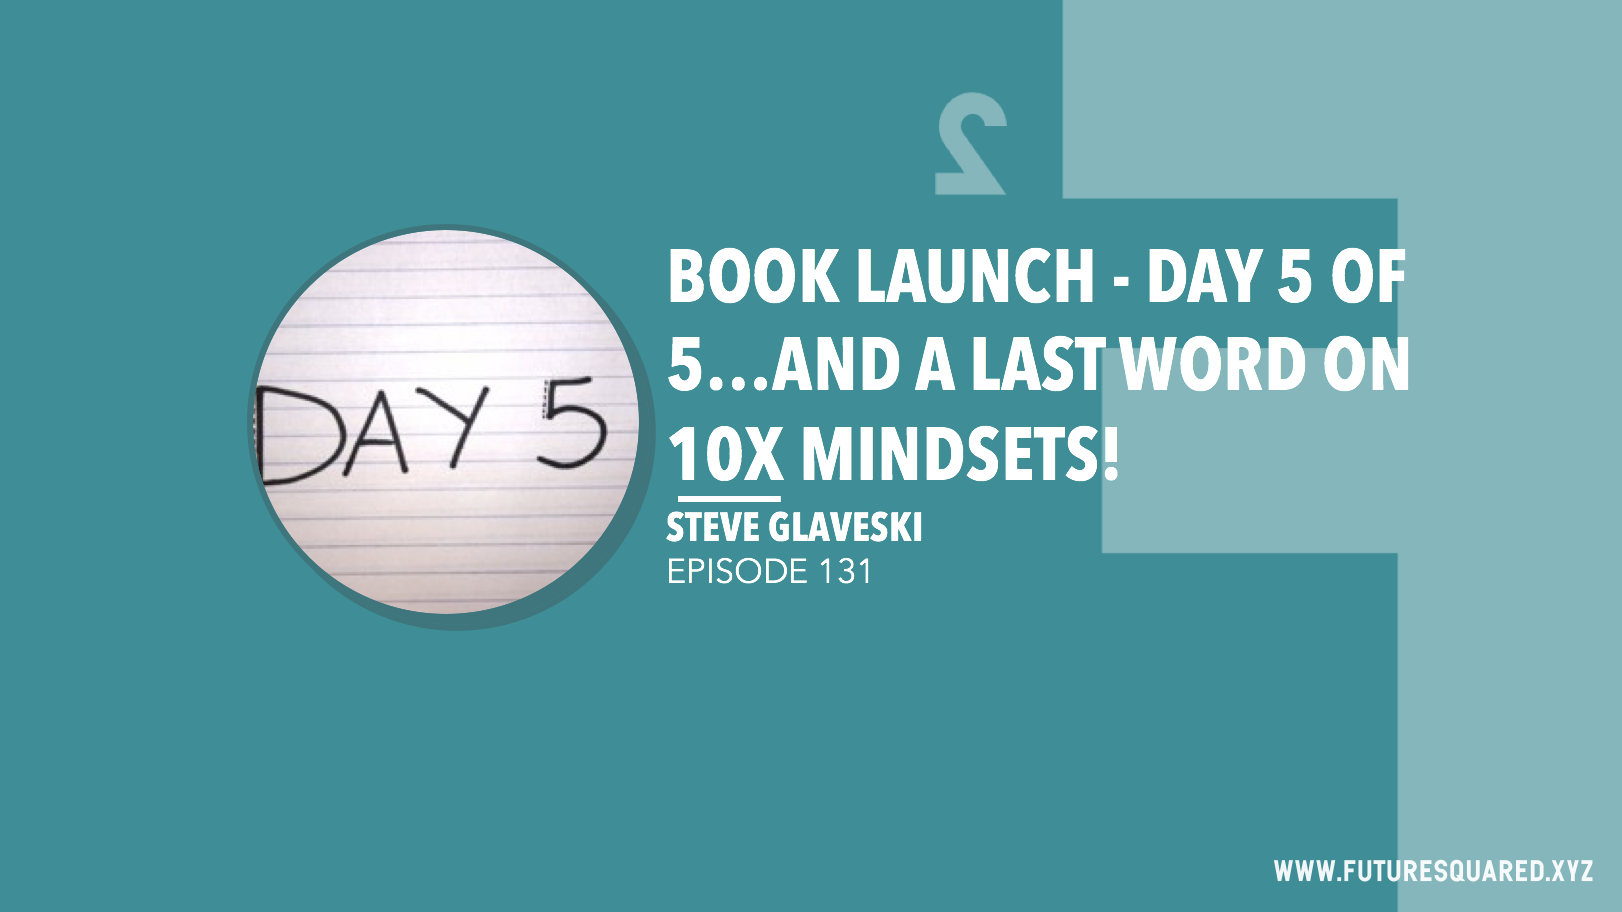 Future Squared Episode #131: Book Launch - Day 5 of 5...and a final word on 10X mindsets!